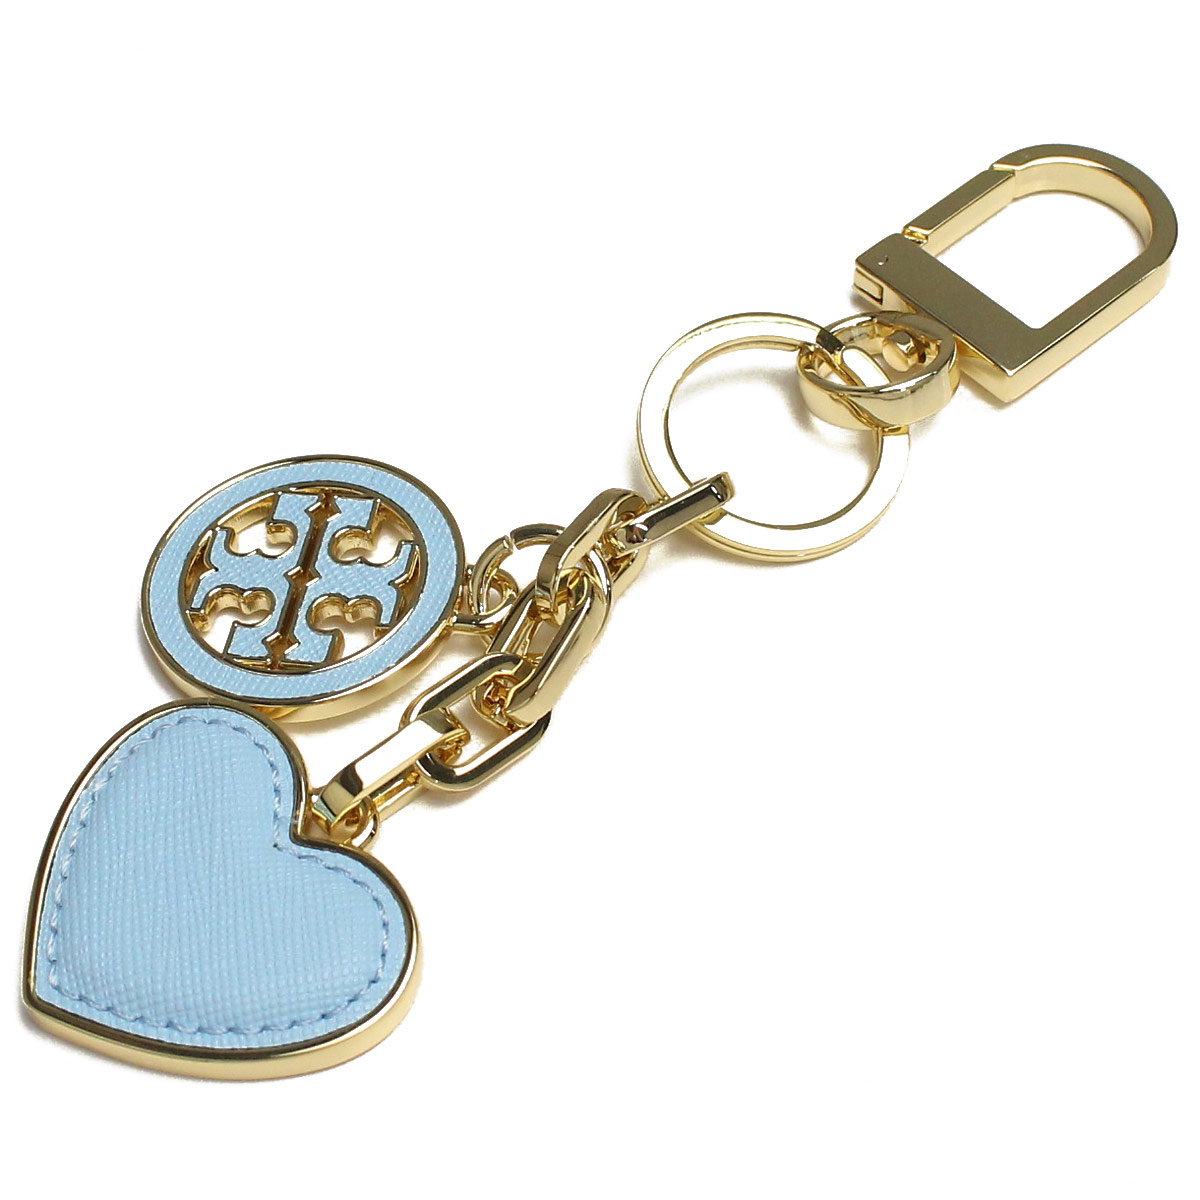 8a6065d82acf Bighit The total brand wholesale  Tory Burch (TORY BURCH) LOGO AND HEART  KEY FOB key ring 11169312-410 RIVIERA BLUE blue( taxfree send by  EMS authentic A ...